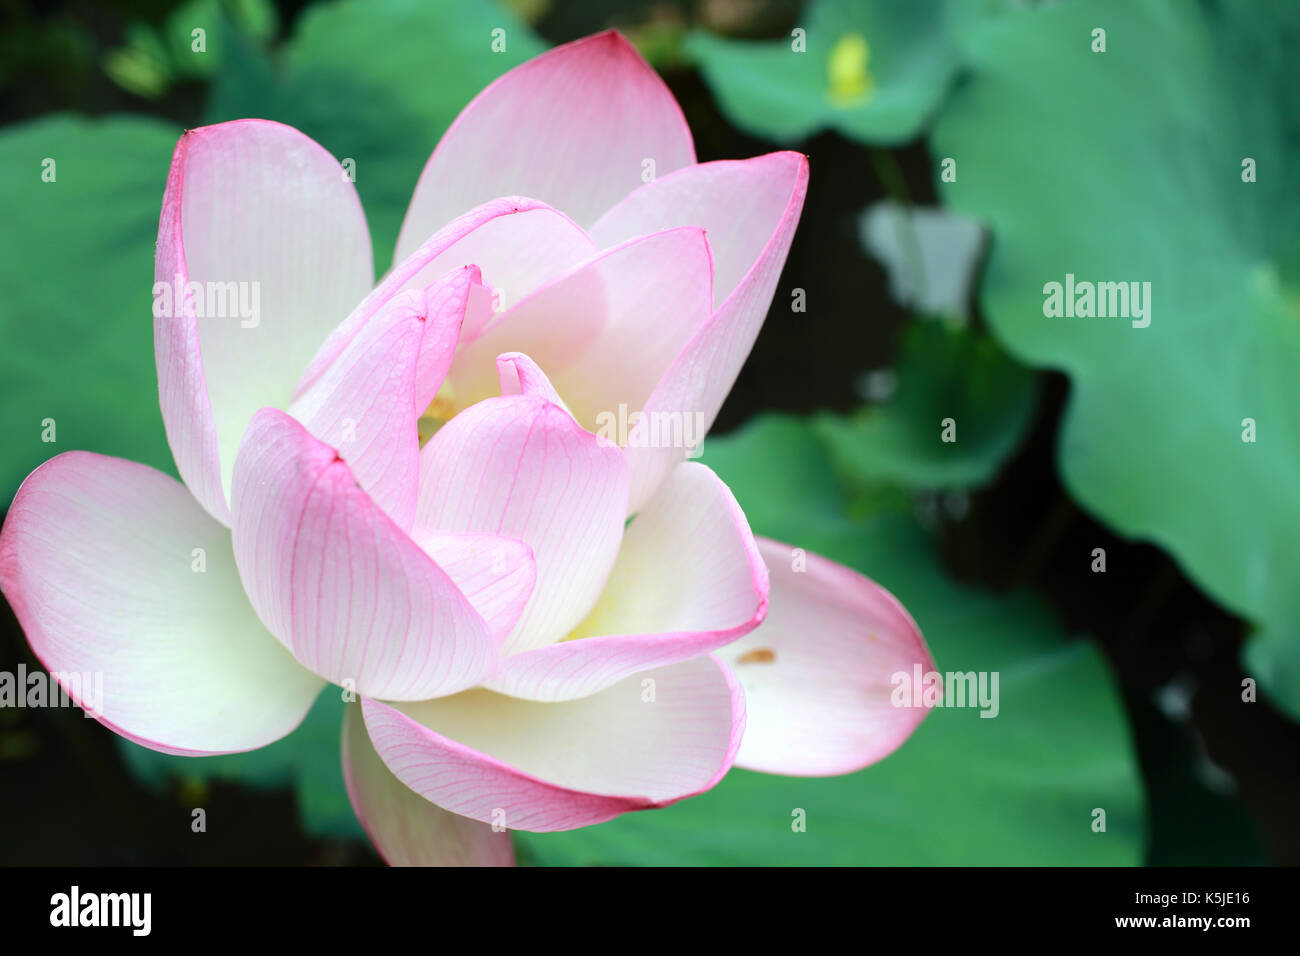 Opening lotus flower stock photos opening lotus flower stock blossom opening lotus means the peace in chinese culture stock image izmirmasajfo